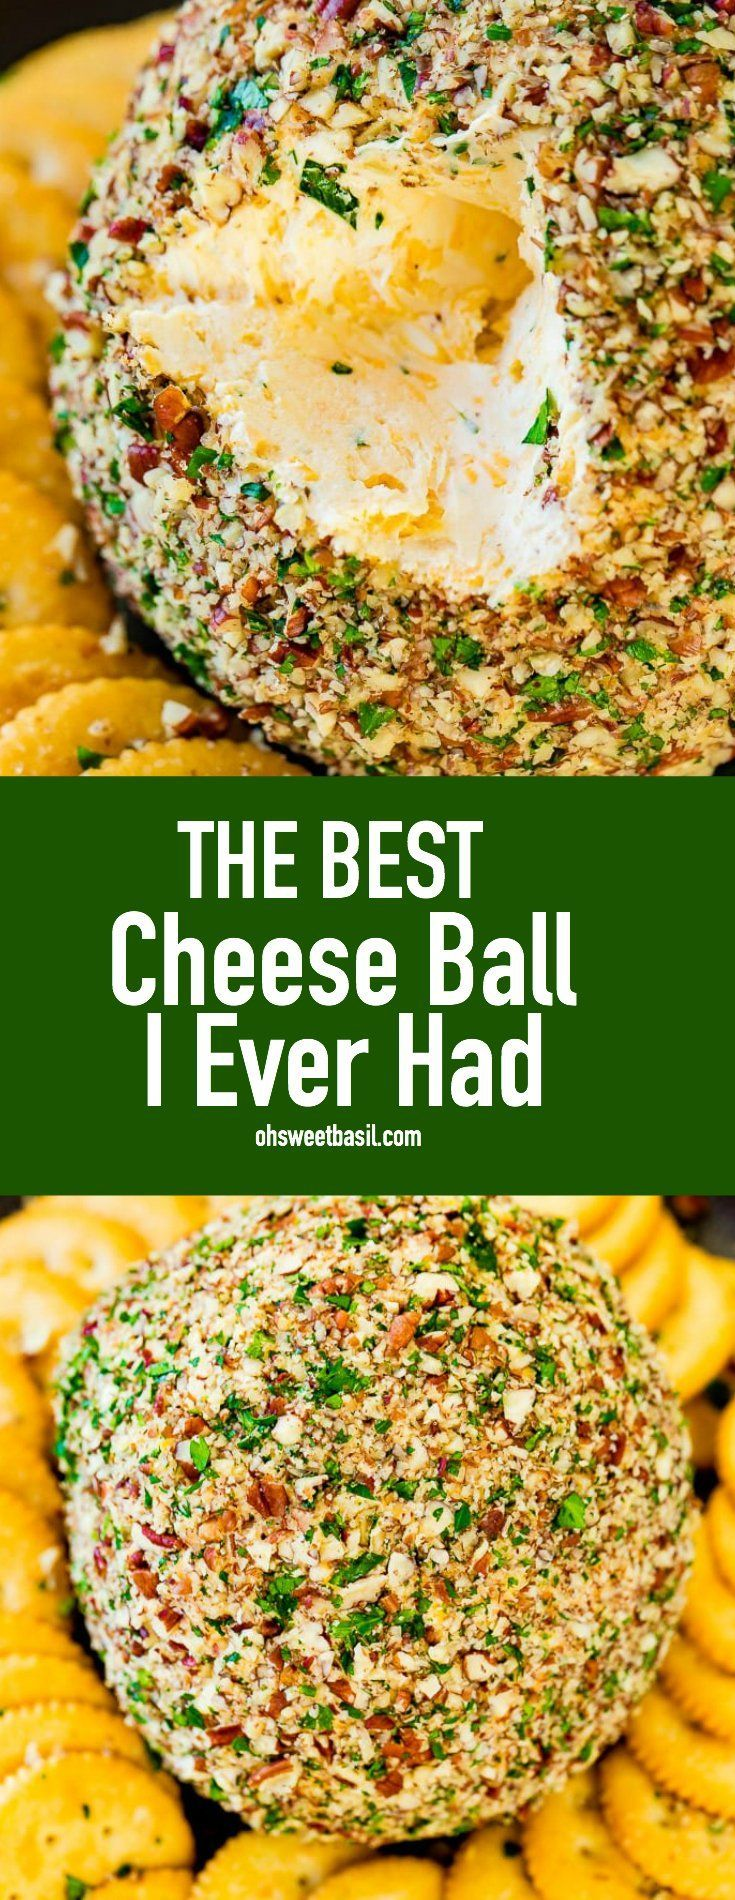 I had no idea that a cheese ball could be this good. Last year I had the best cheese ball I ever ha